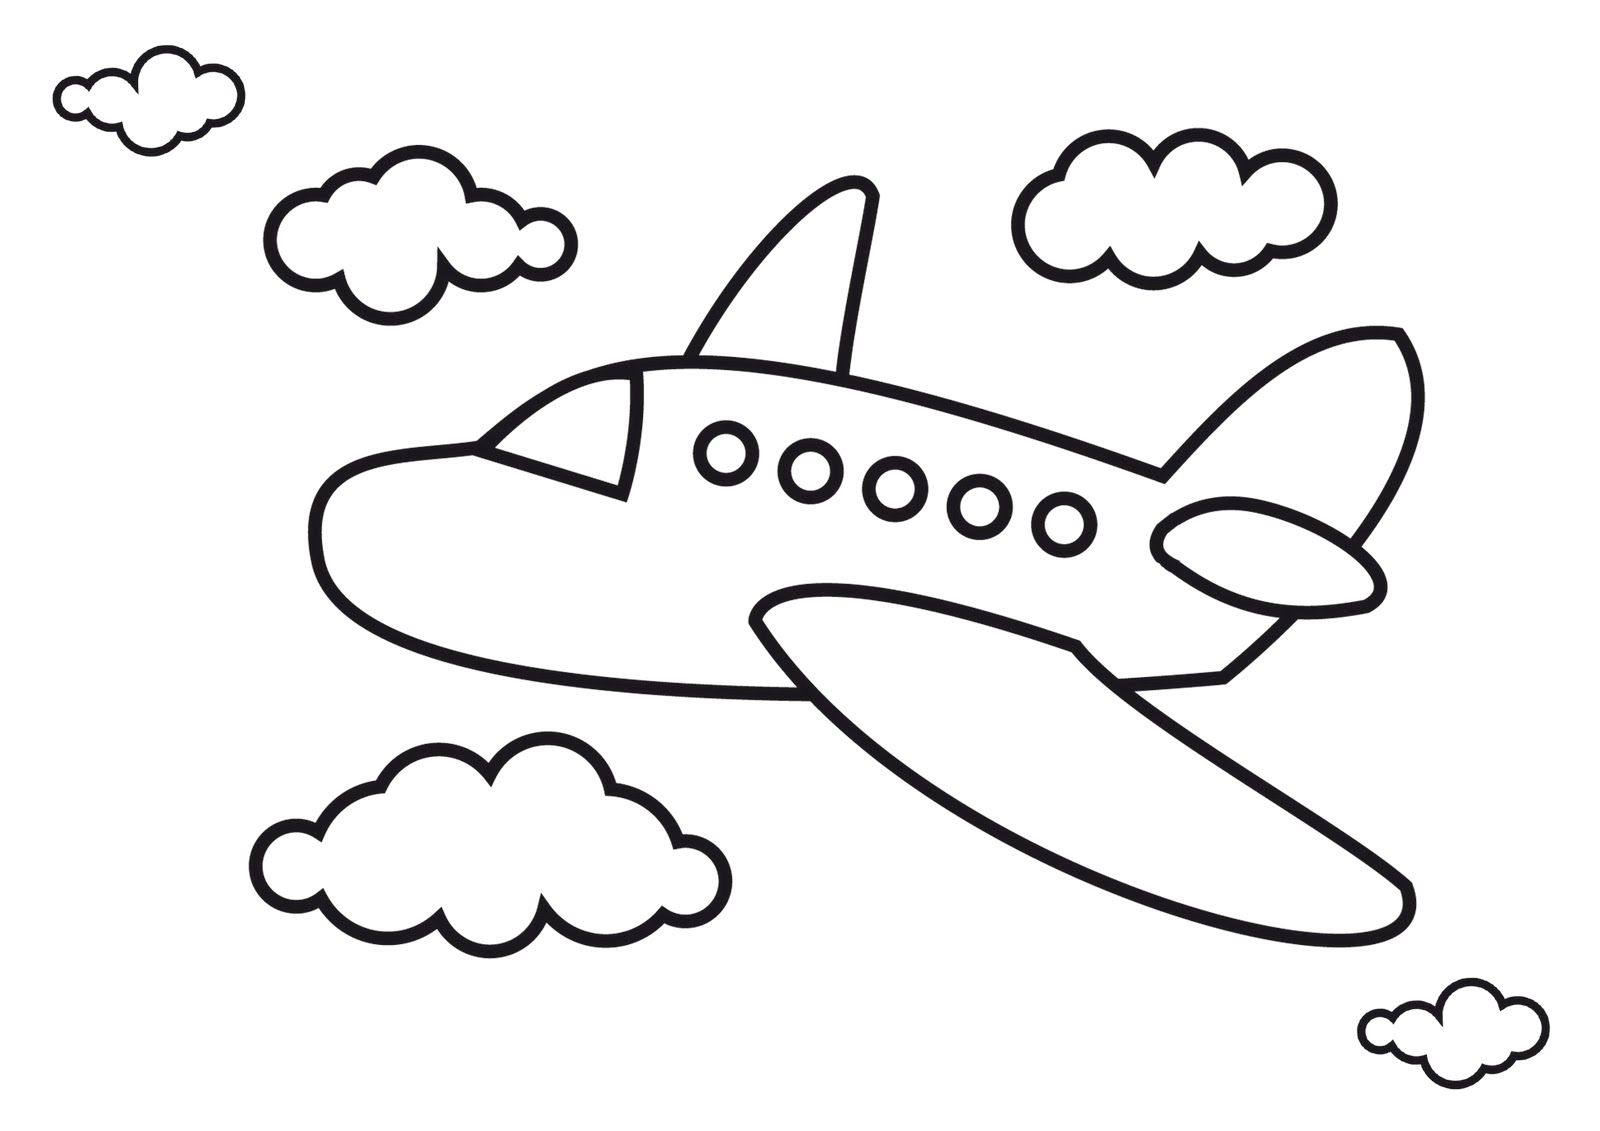 Airplane Coloring Pages Airplanes Pictures For Kids Viewing Gallery For Easy Airpla Simple Airplane Drawing Airplane Coloring Pages Coloring Pages For Kids